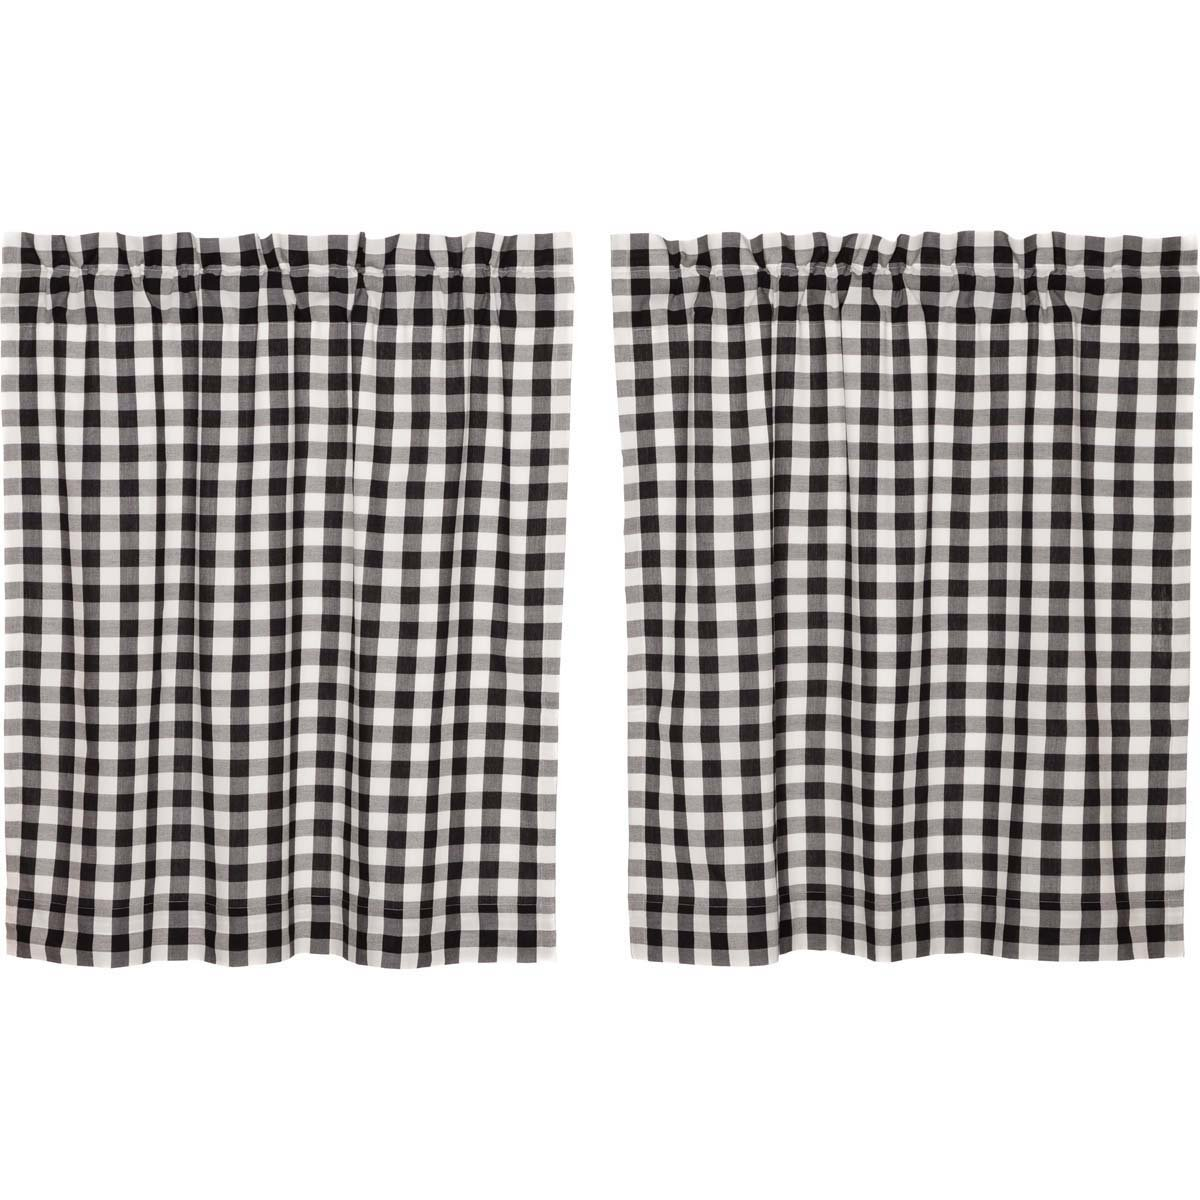 VHC Brands Farmhouse Classic Country Curtains Annie Buffalo Check Lined Tier Pair, L36 x W36, Black